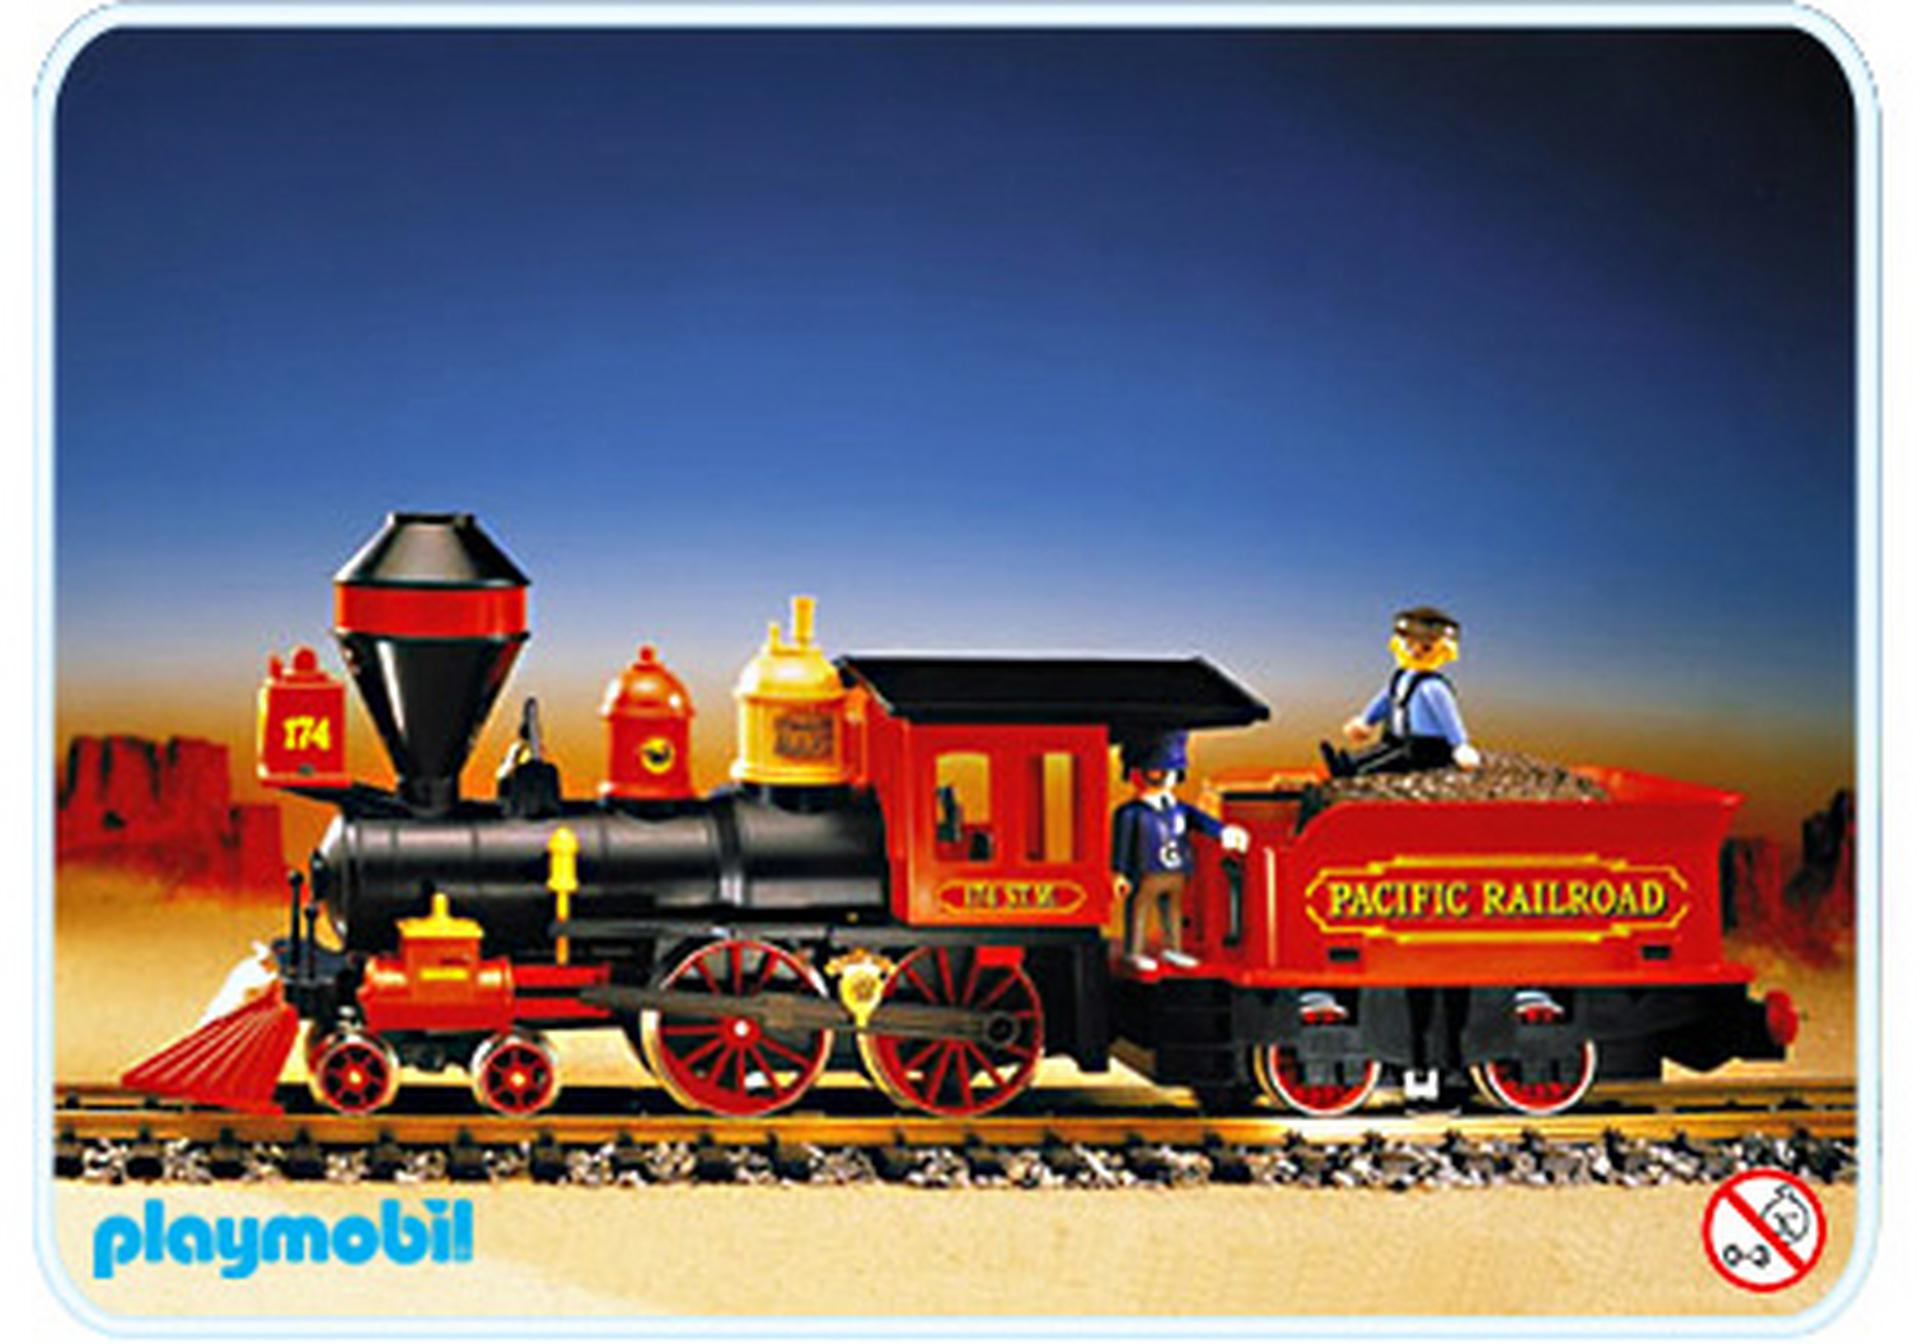 locomotive tender pour train far west 4054 a playmobil. Black Bedroom Furniture Sets. Home Design Ideas